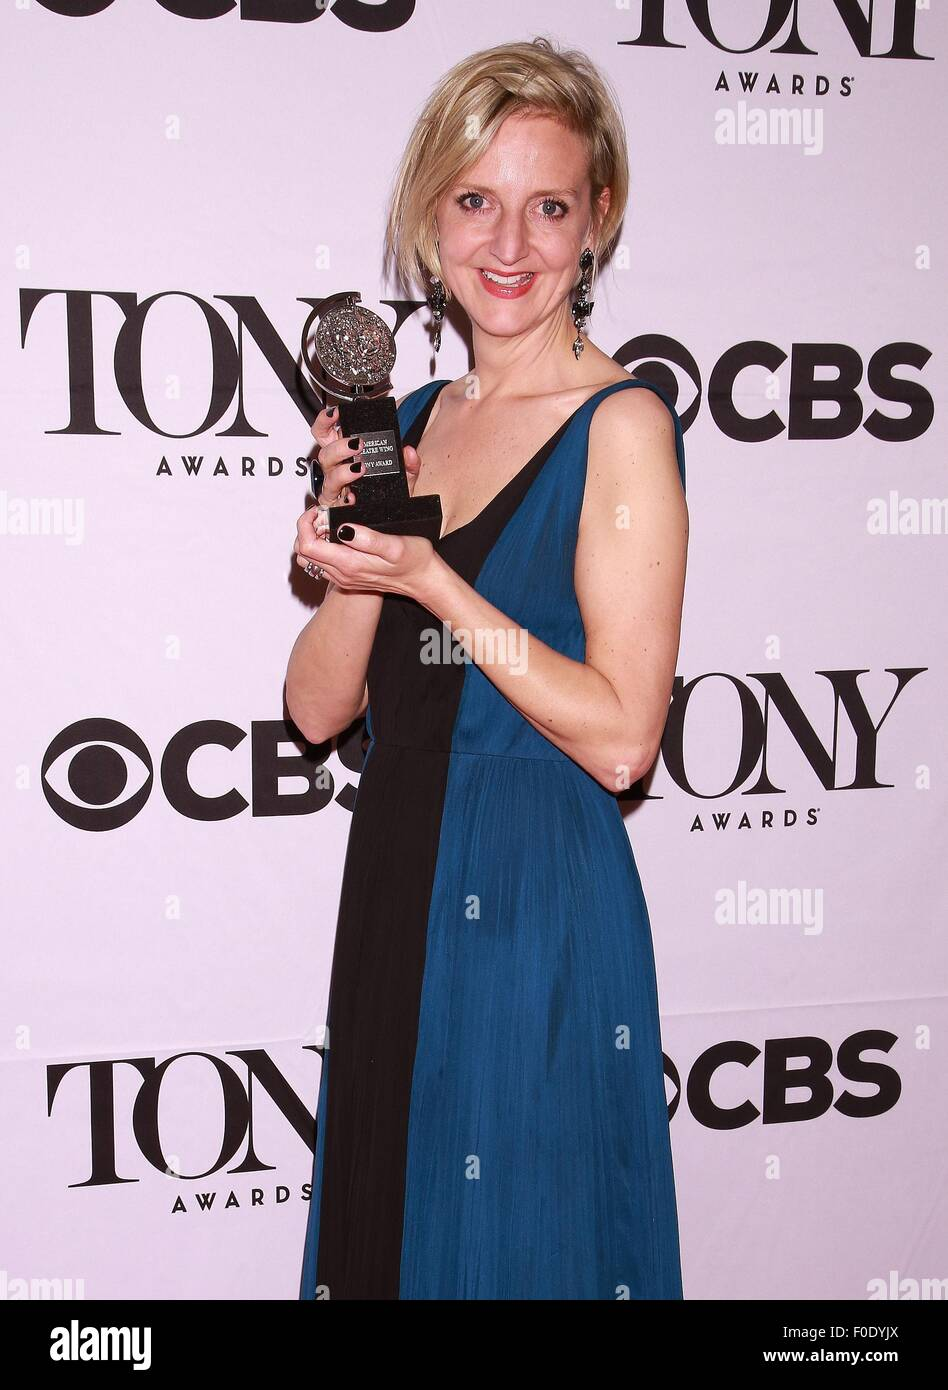 The 69th Annual Tony Awards held at Radio City Music Hall - Press Room  Featuring: Marianne Elliott Where: New York - Stock Image